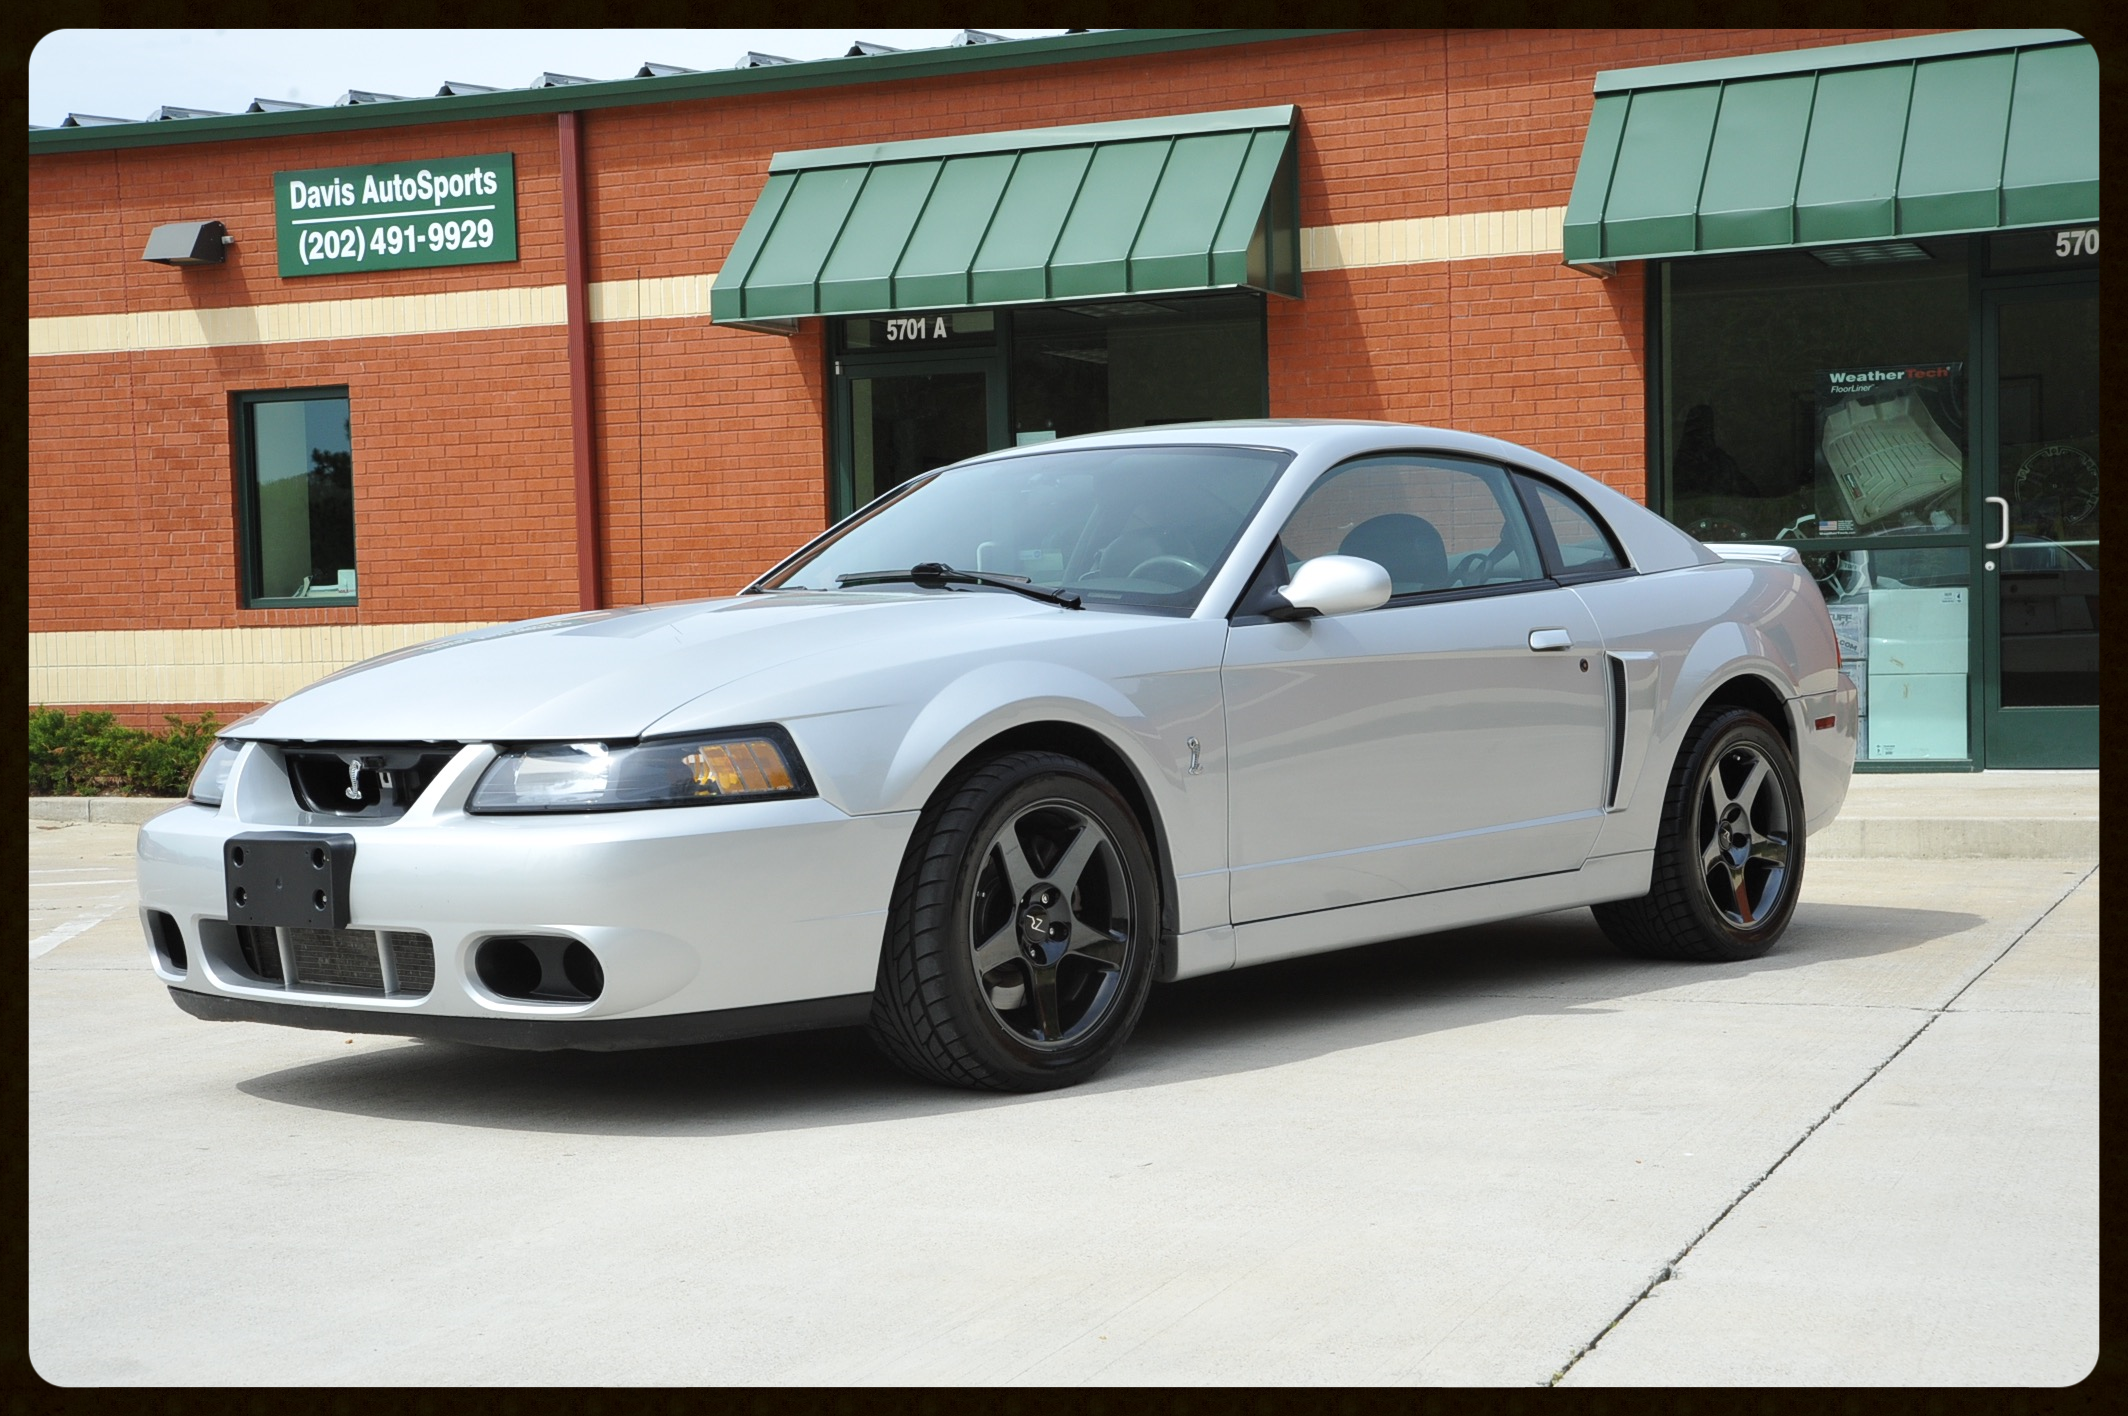 2003 Cobra SVT Terminator...Only 26k Miles...Modded to 650HP...Click to Enjoy the Photos and HD Video